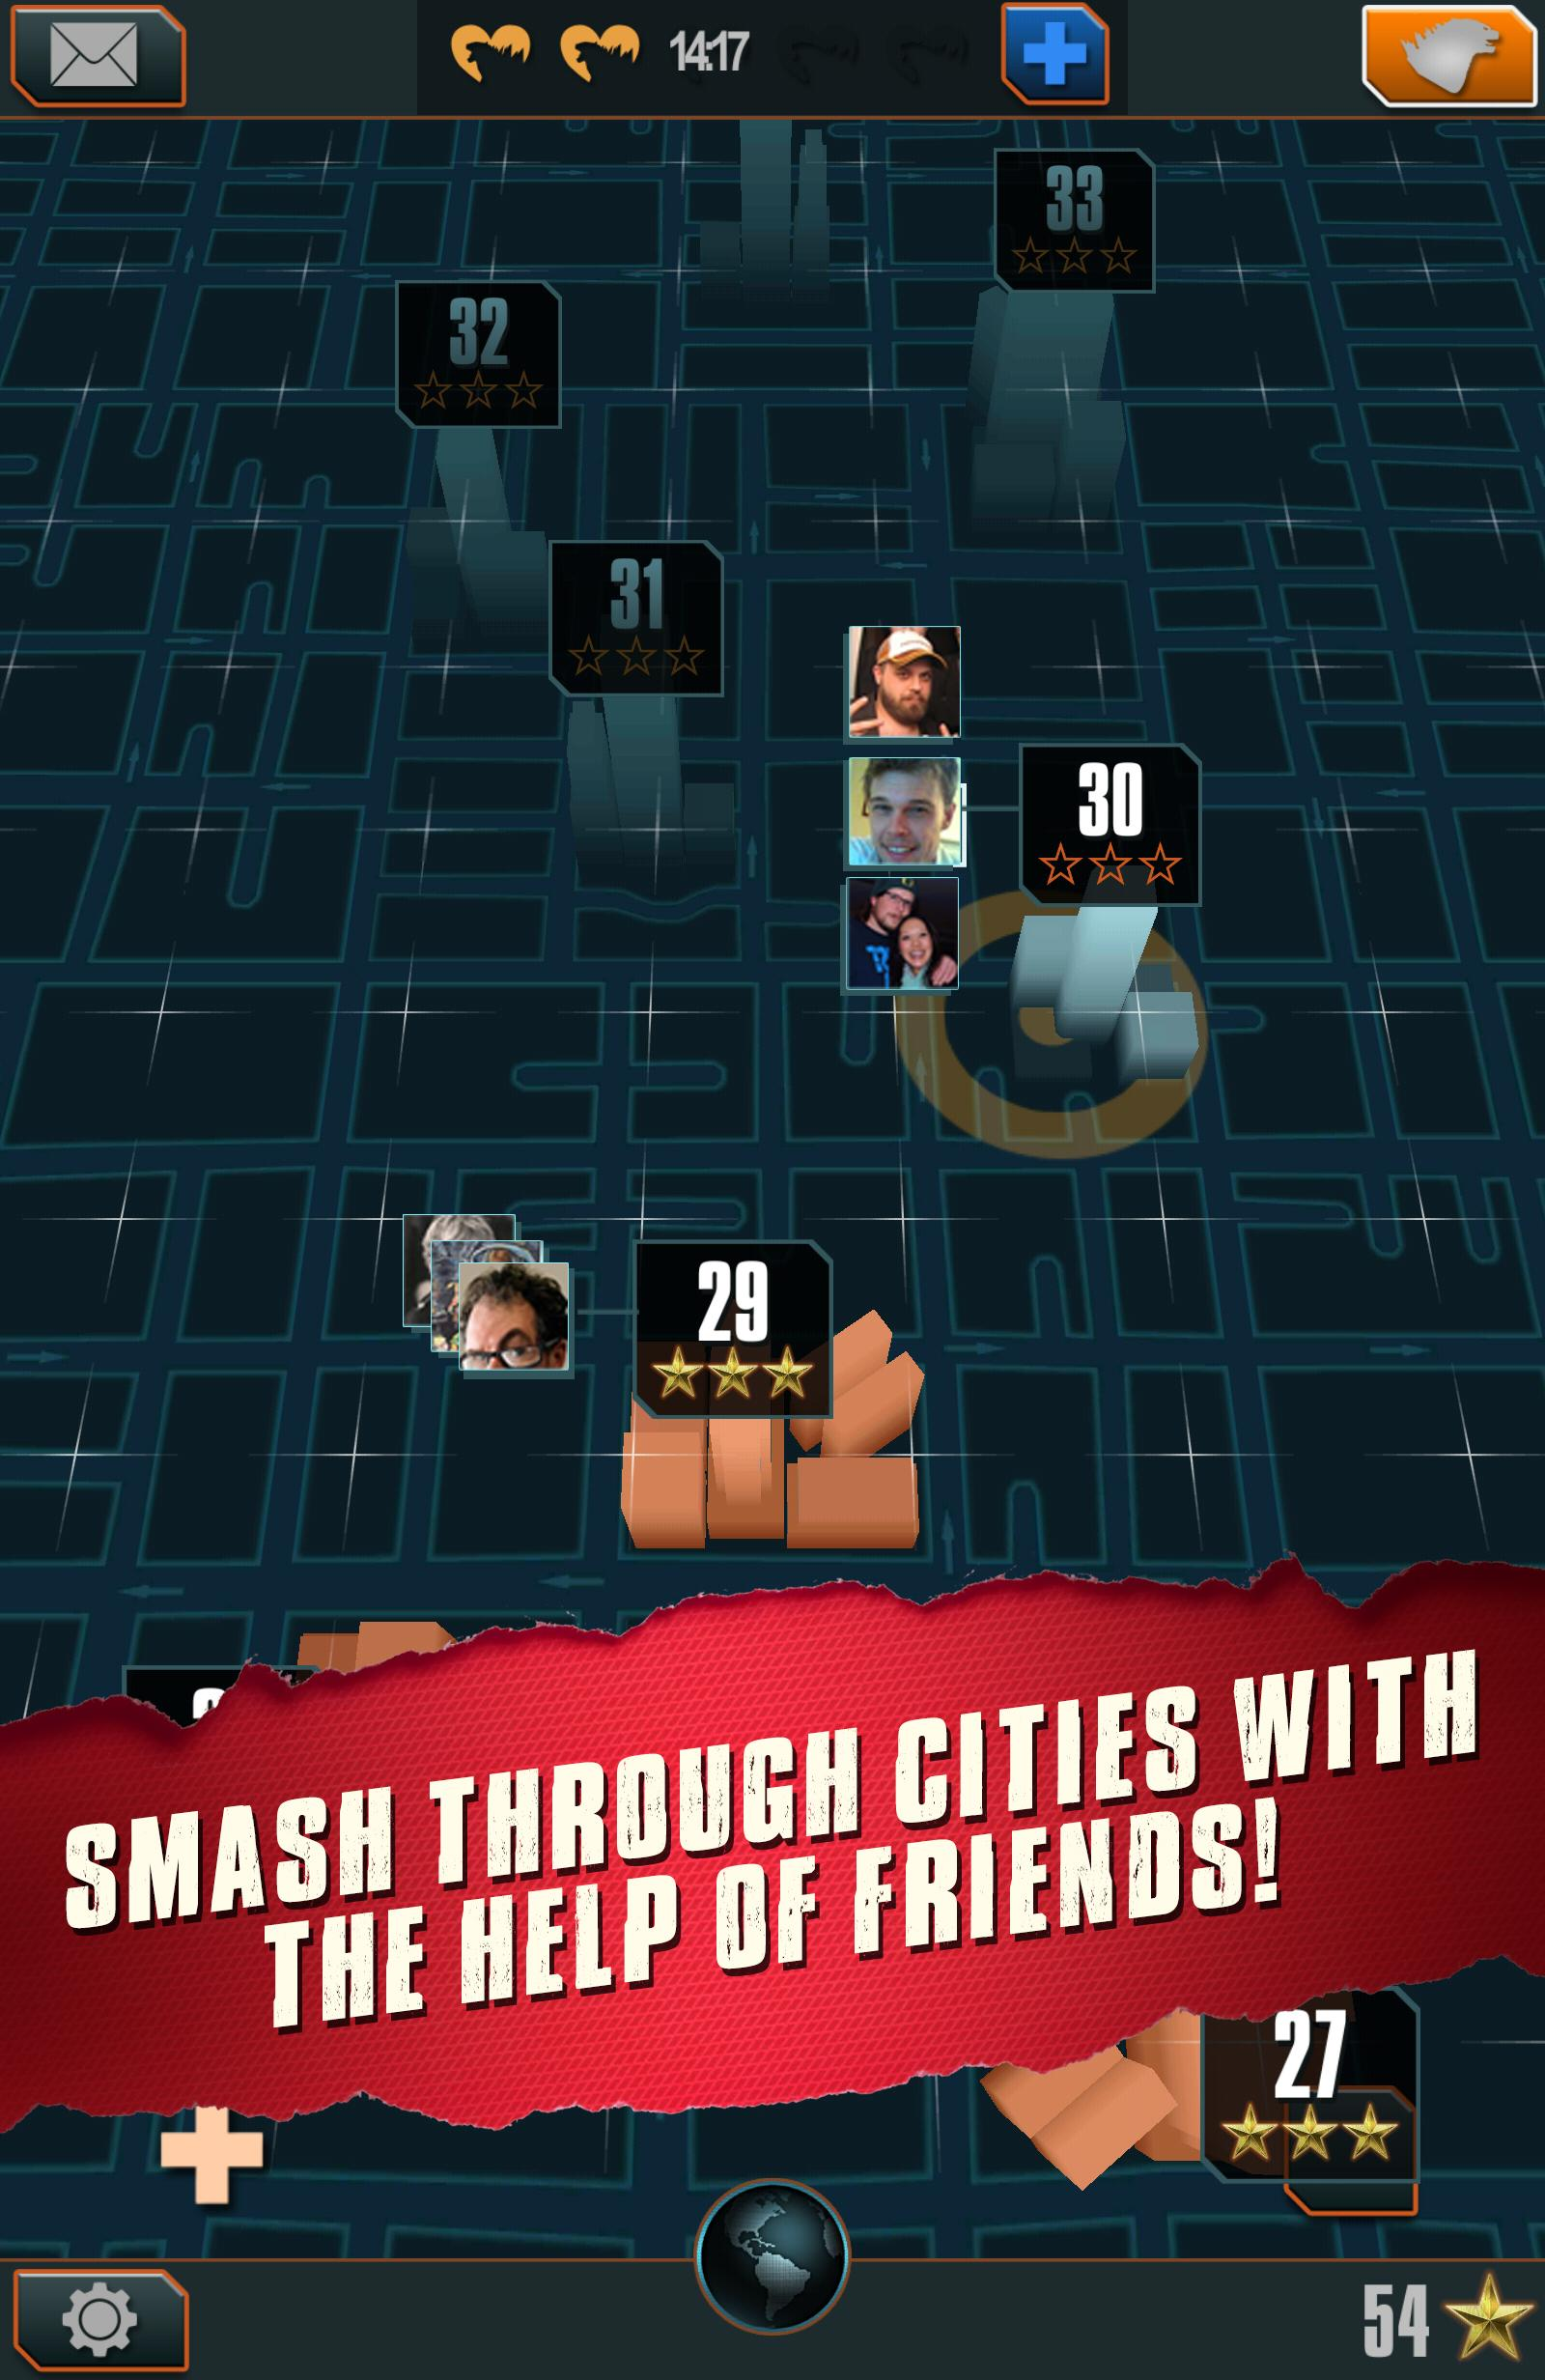 Godzilla - Smash3 screenshot #13